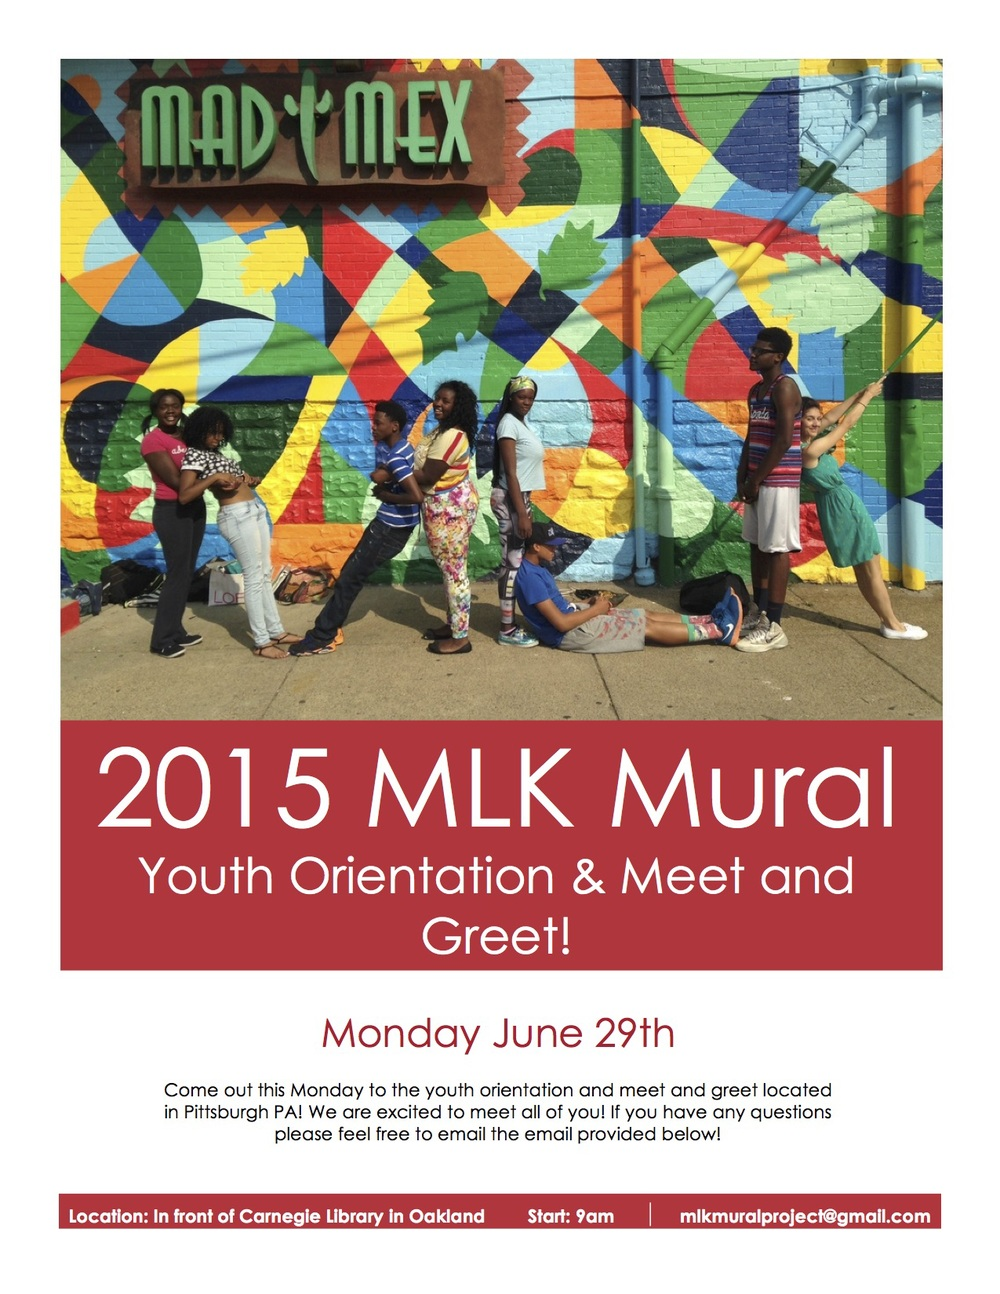 mlk meet and greet flyer jpeg.jpg